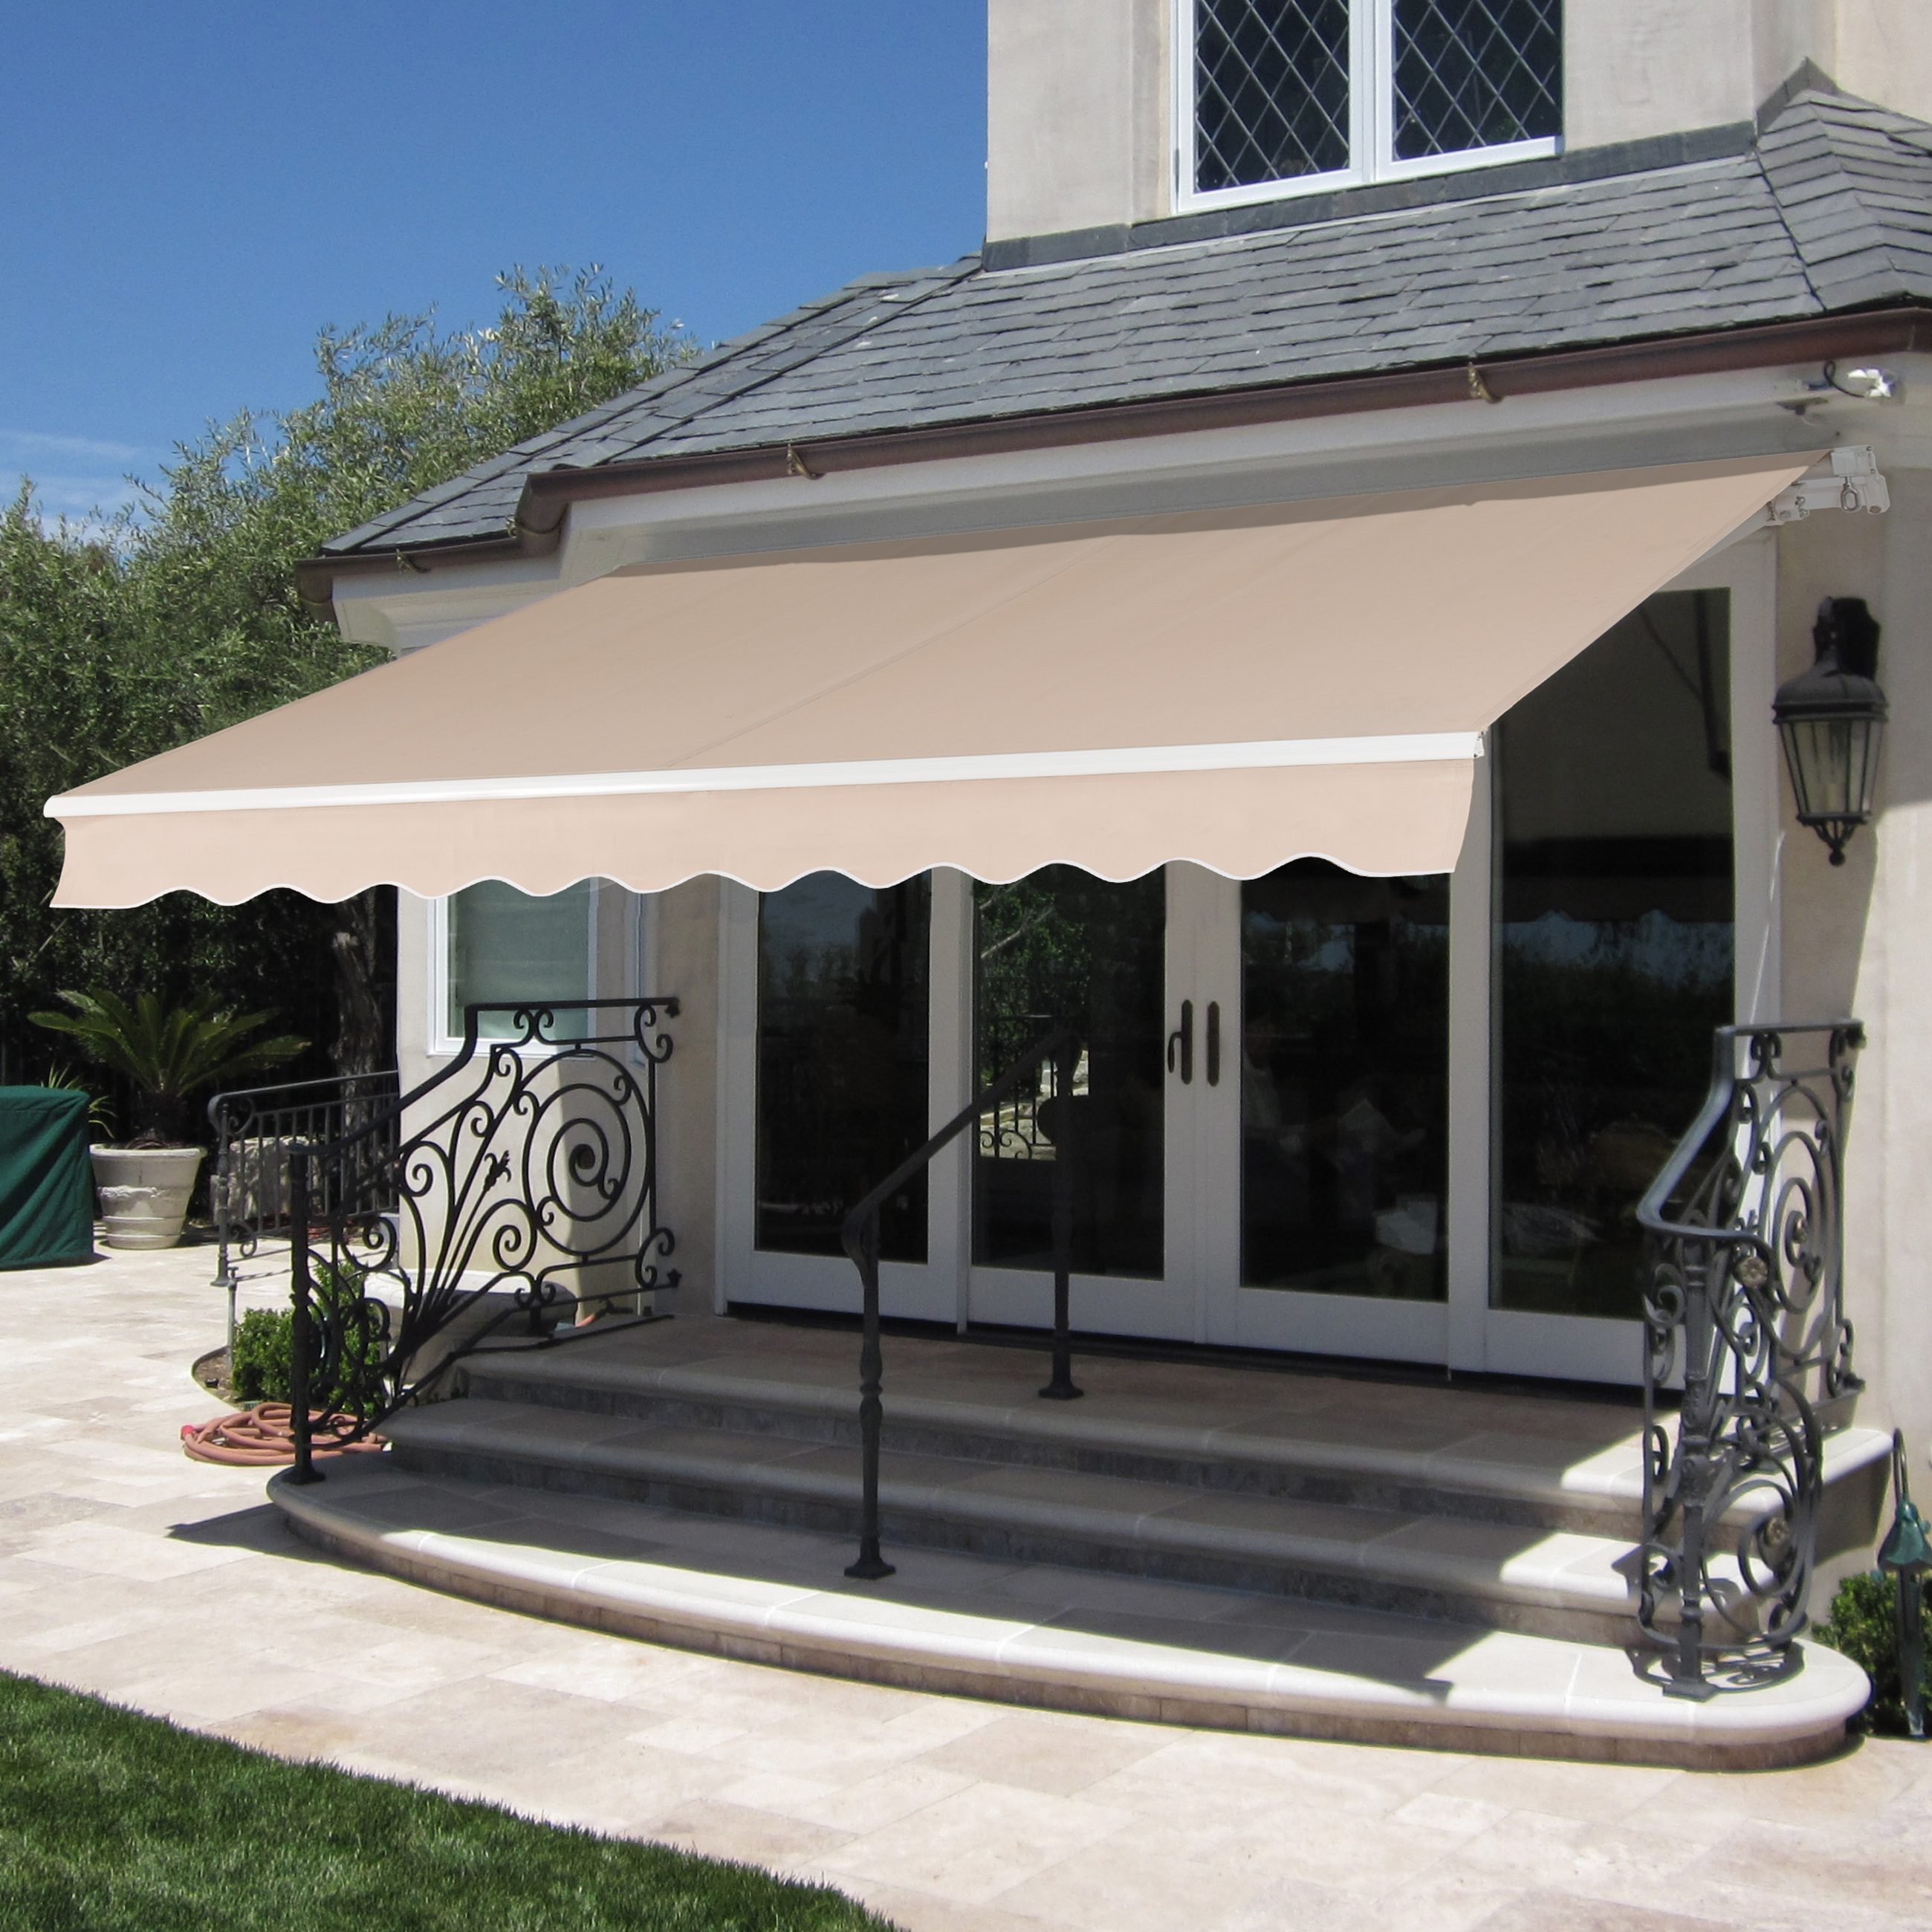 Genial Best Choice Products 98x80in Retractable Aluminum Patio Deck Awning Cover,  Canopy, Sunshade